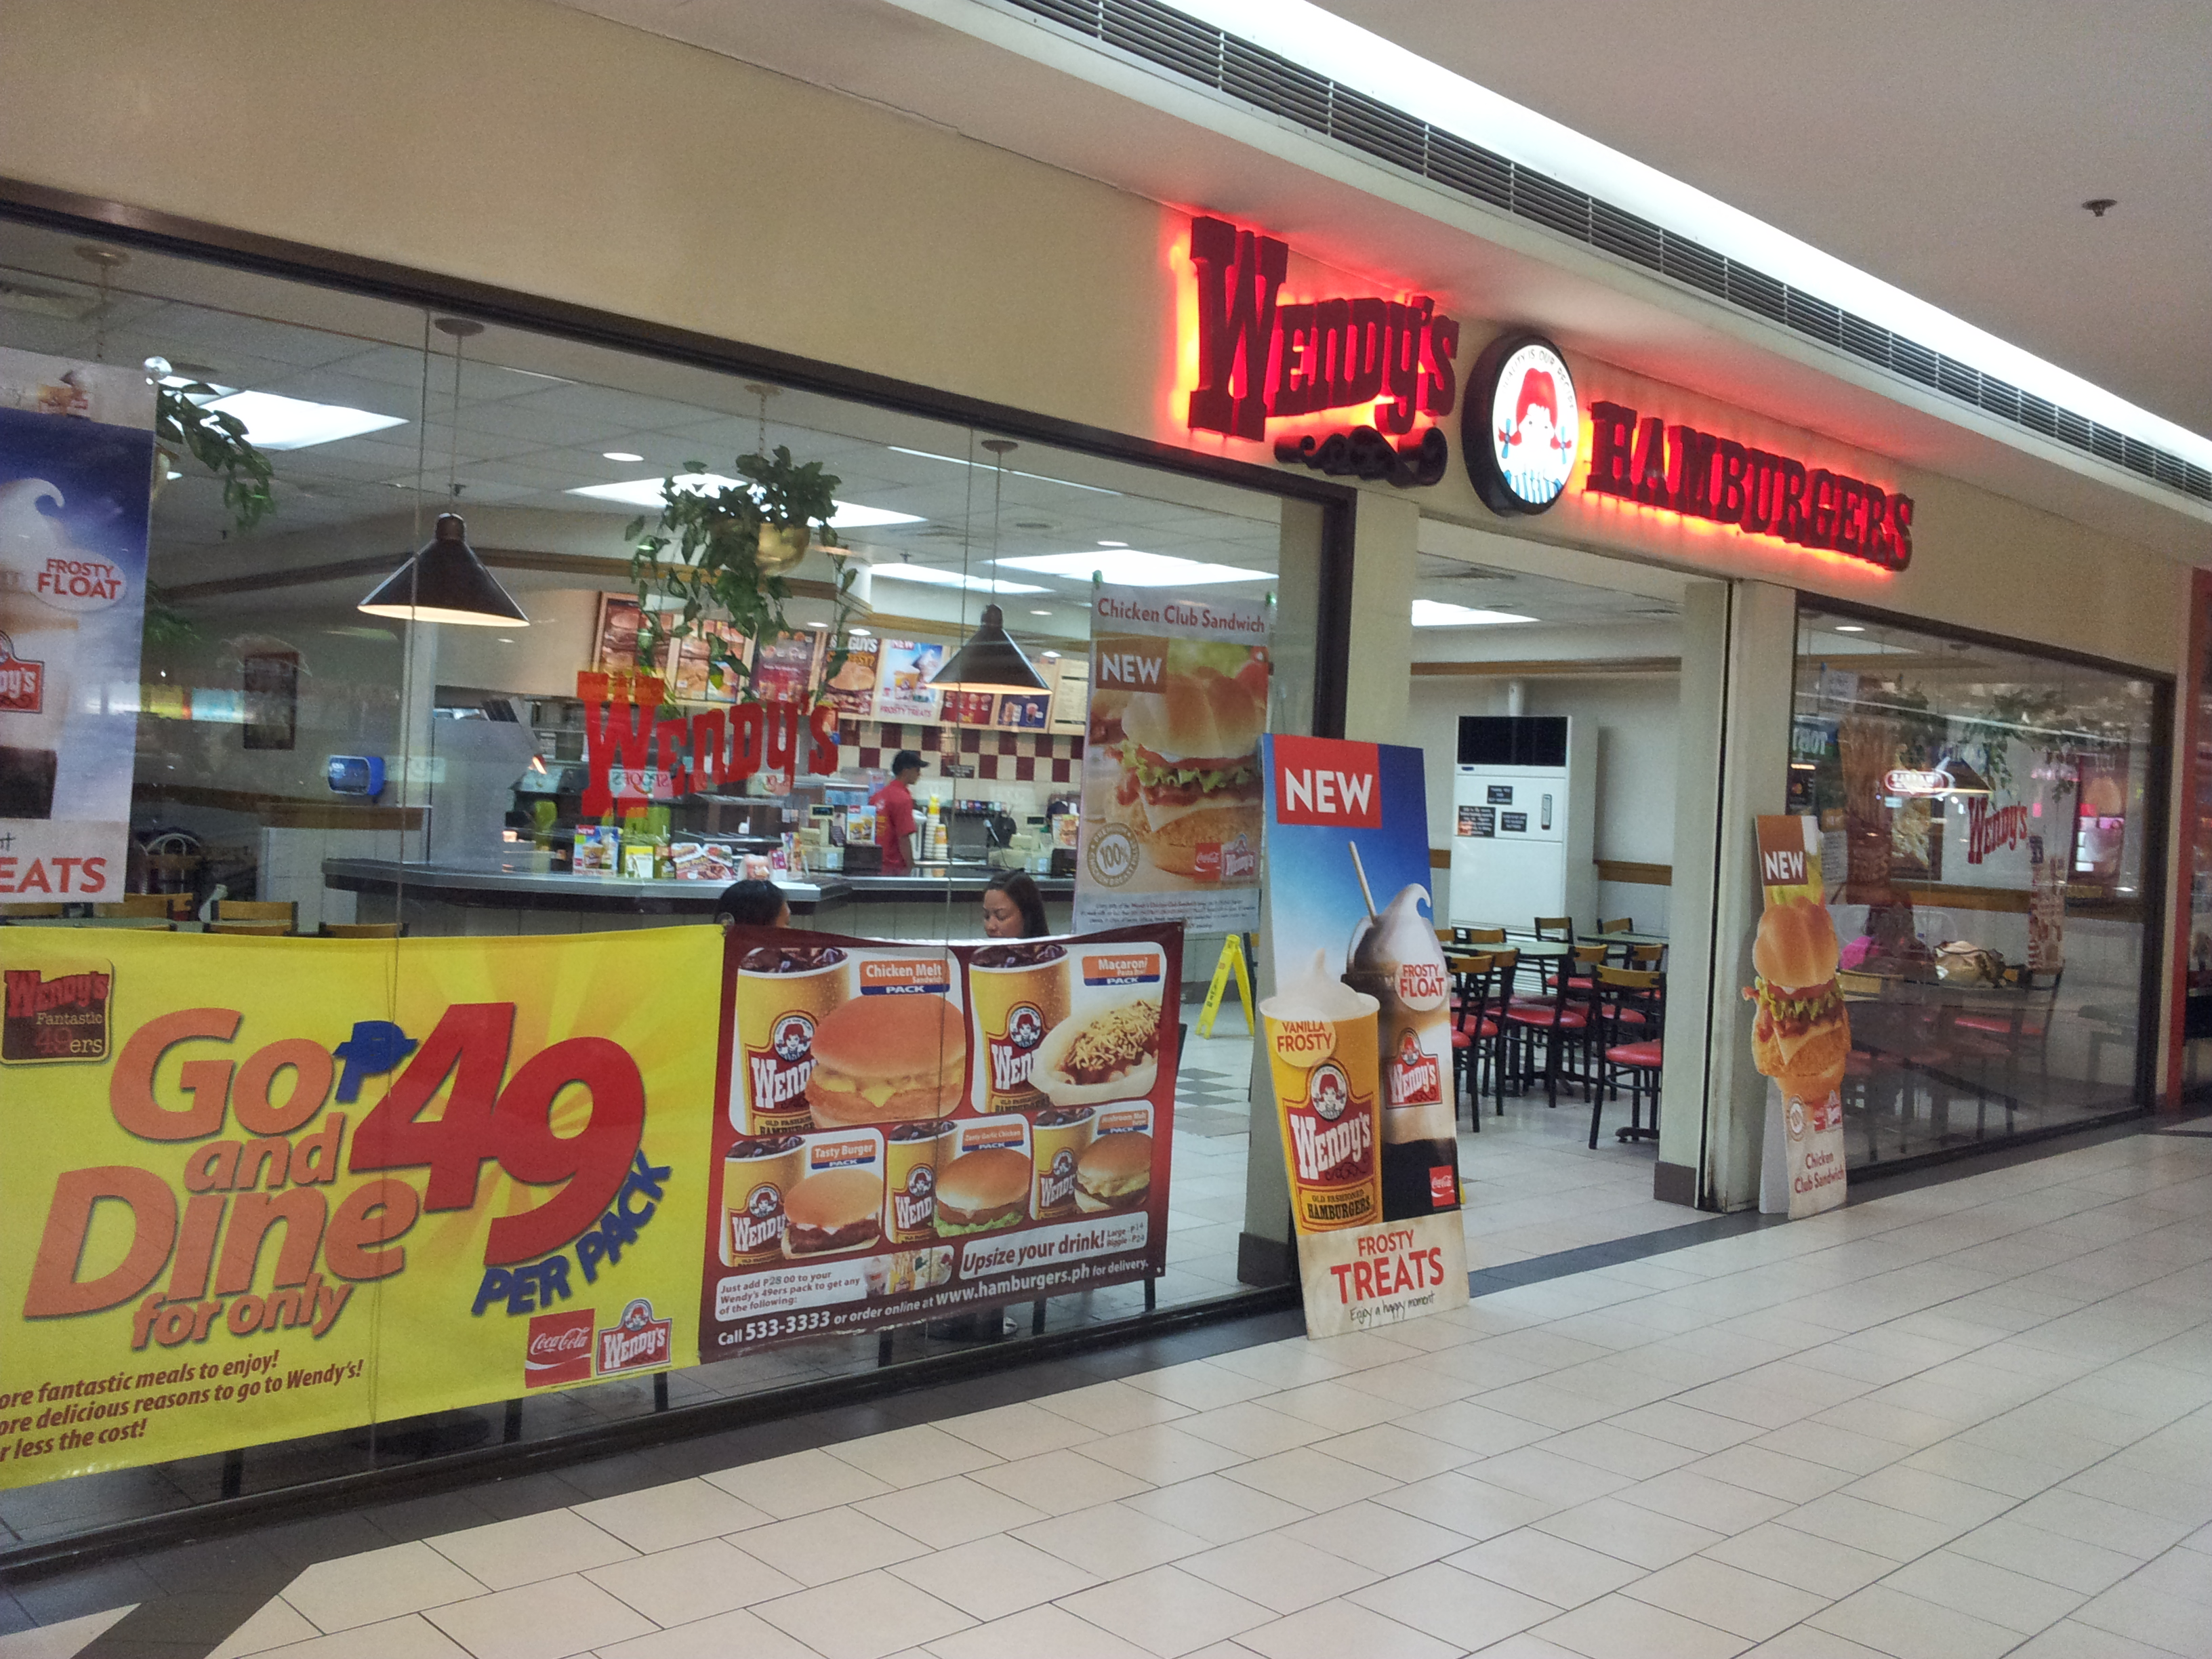 A Wendy's outlet in Manila, Philippines.